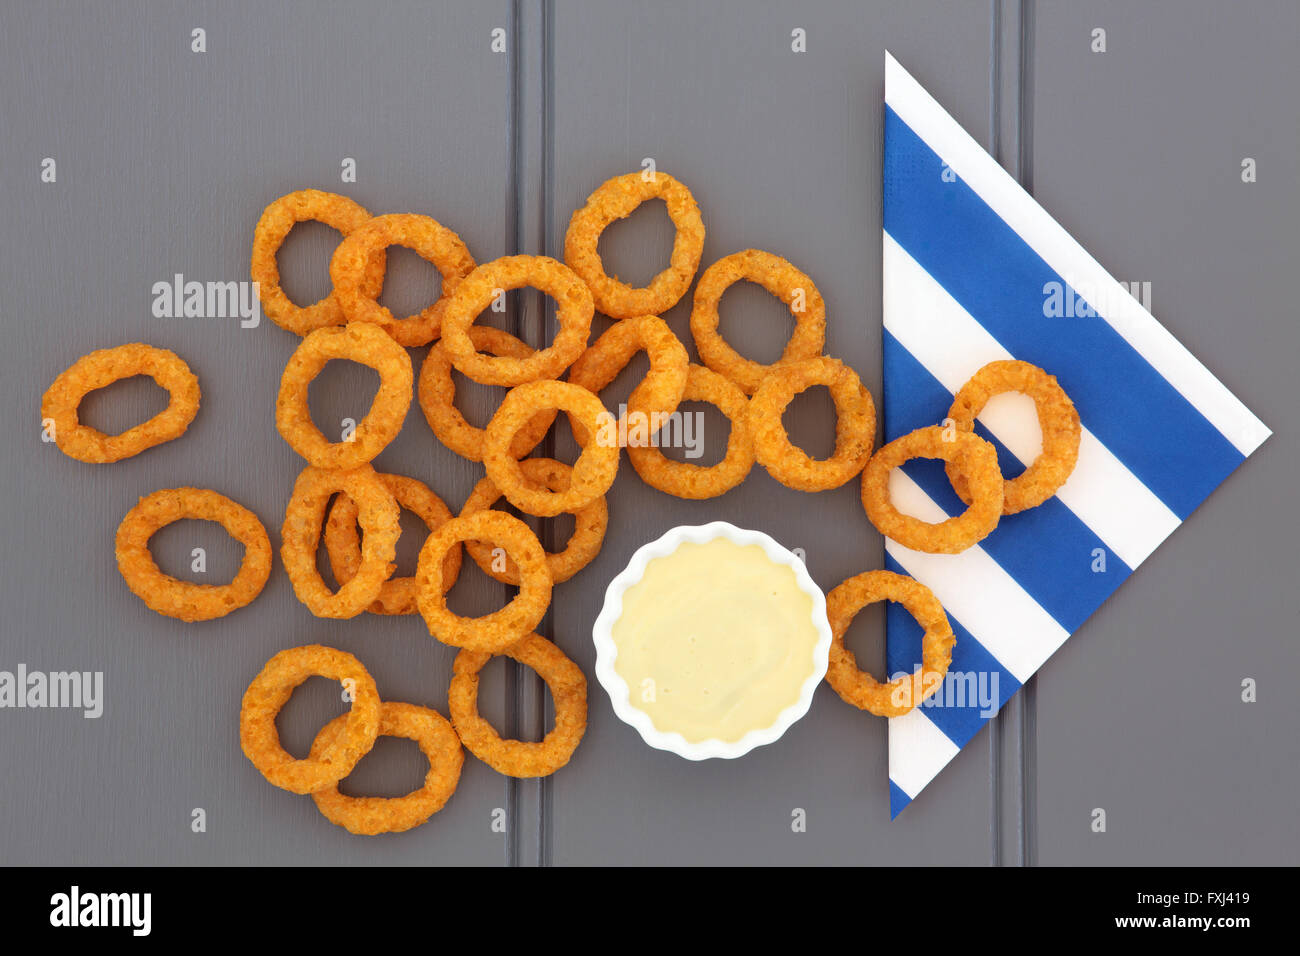 Onion ring snack food with mayo dip and striped napkin. - Stock Image